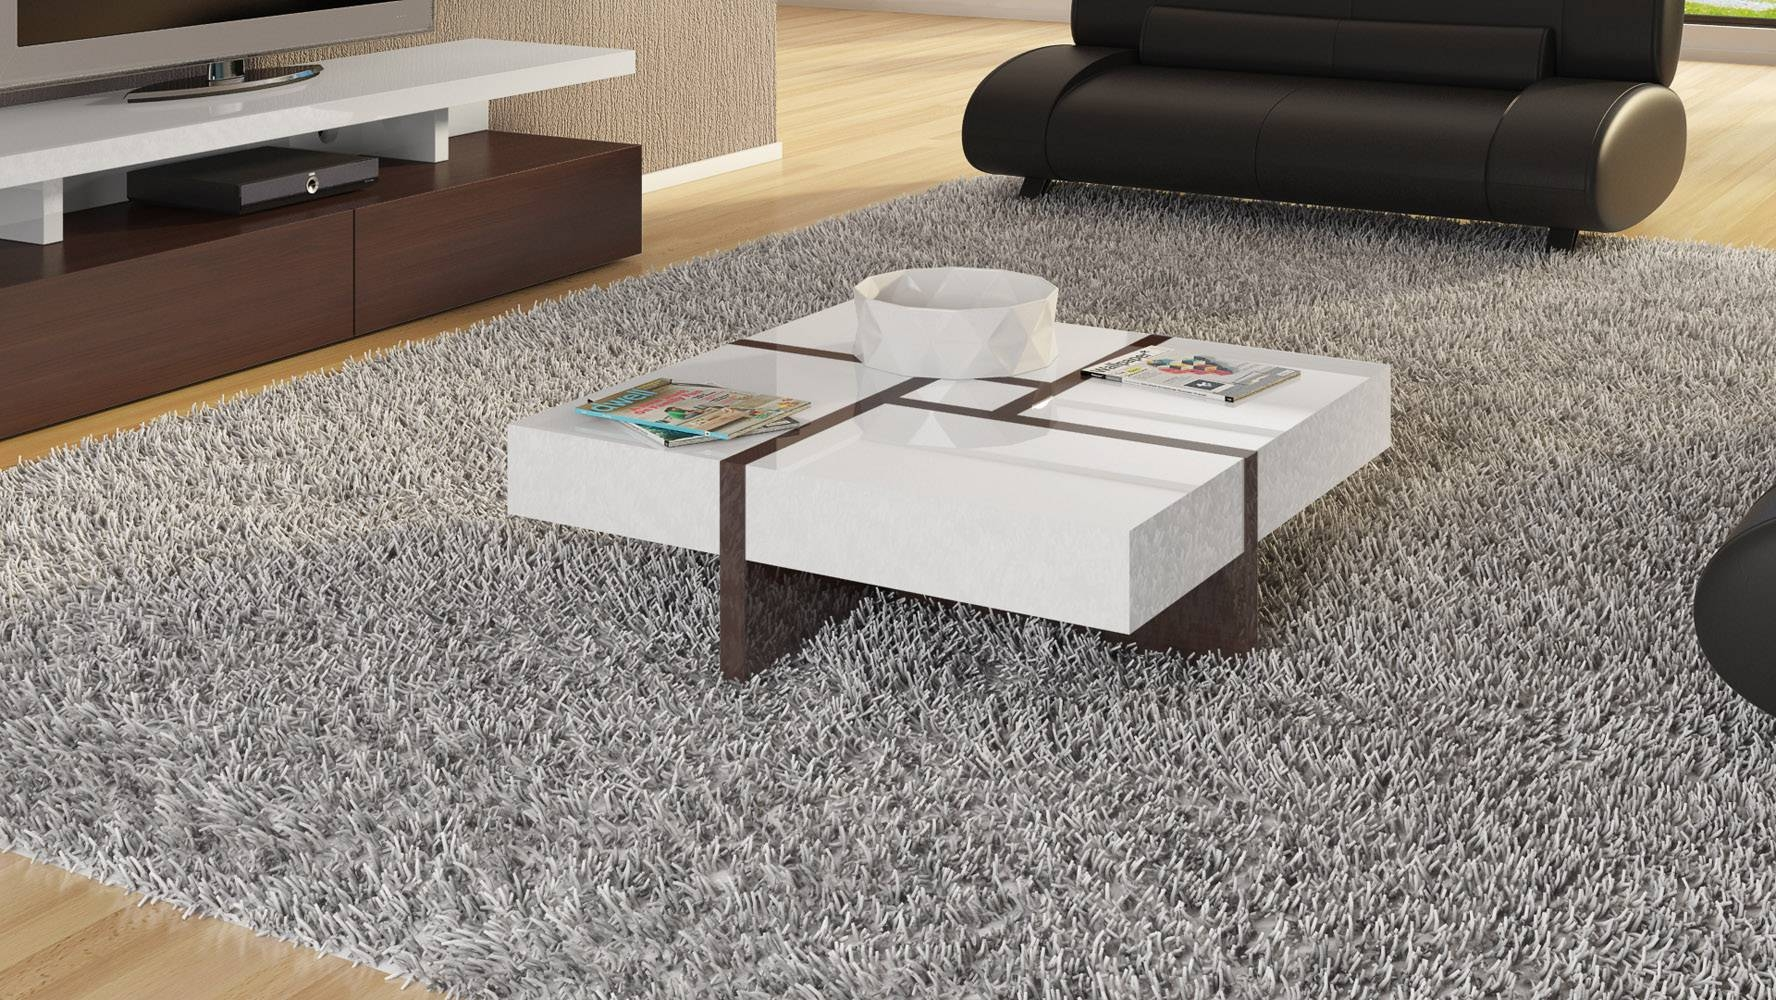 Mcintosh High Gloss Coffee Table With Storage - White Square pertaining to White Gloss Coffee Tables (Image 17 of 30)